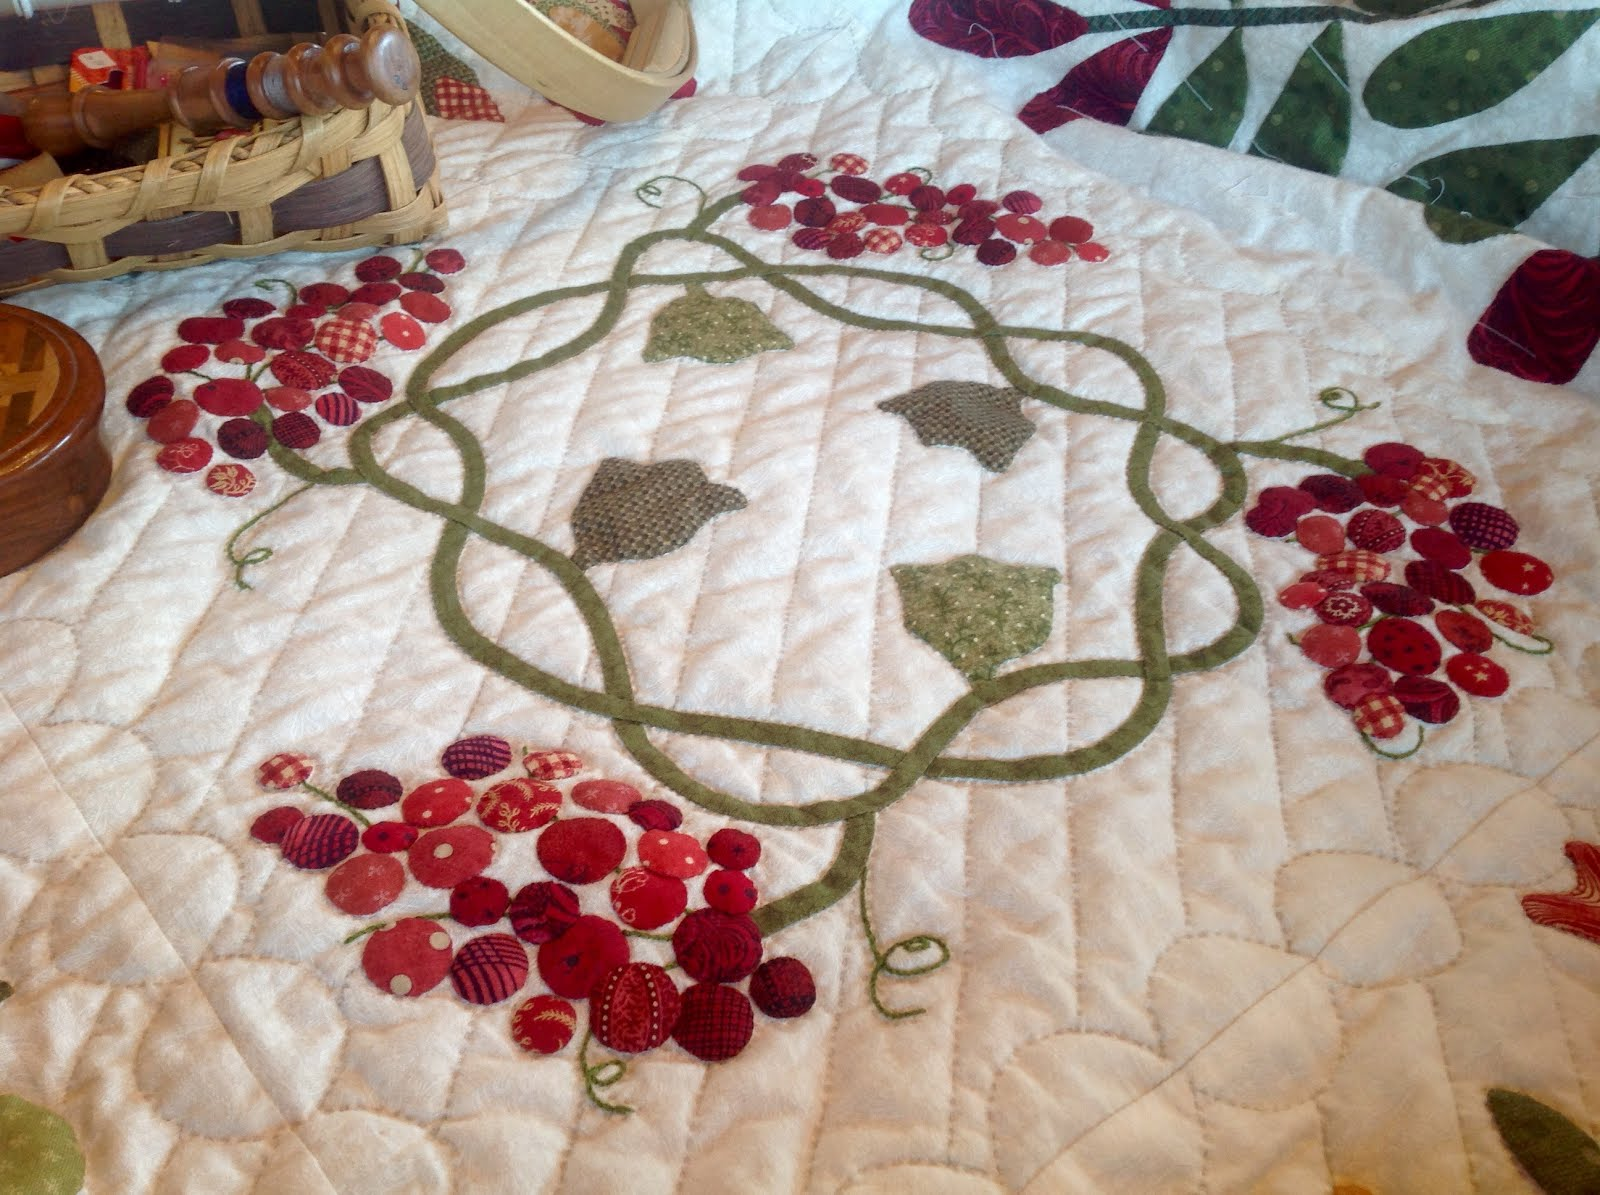 Cherry Tree quilt progress